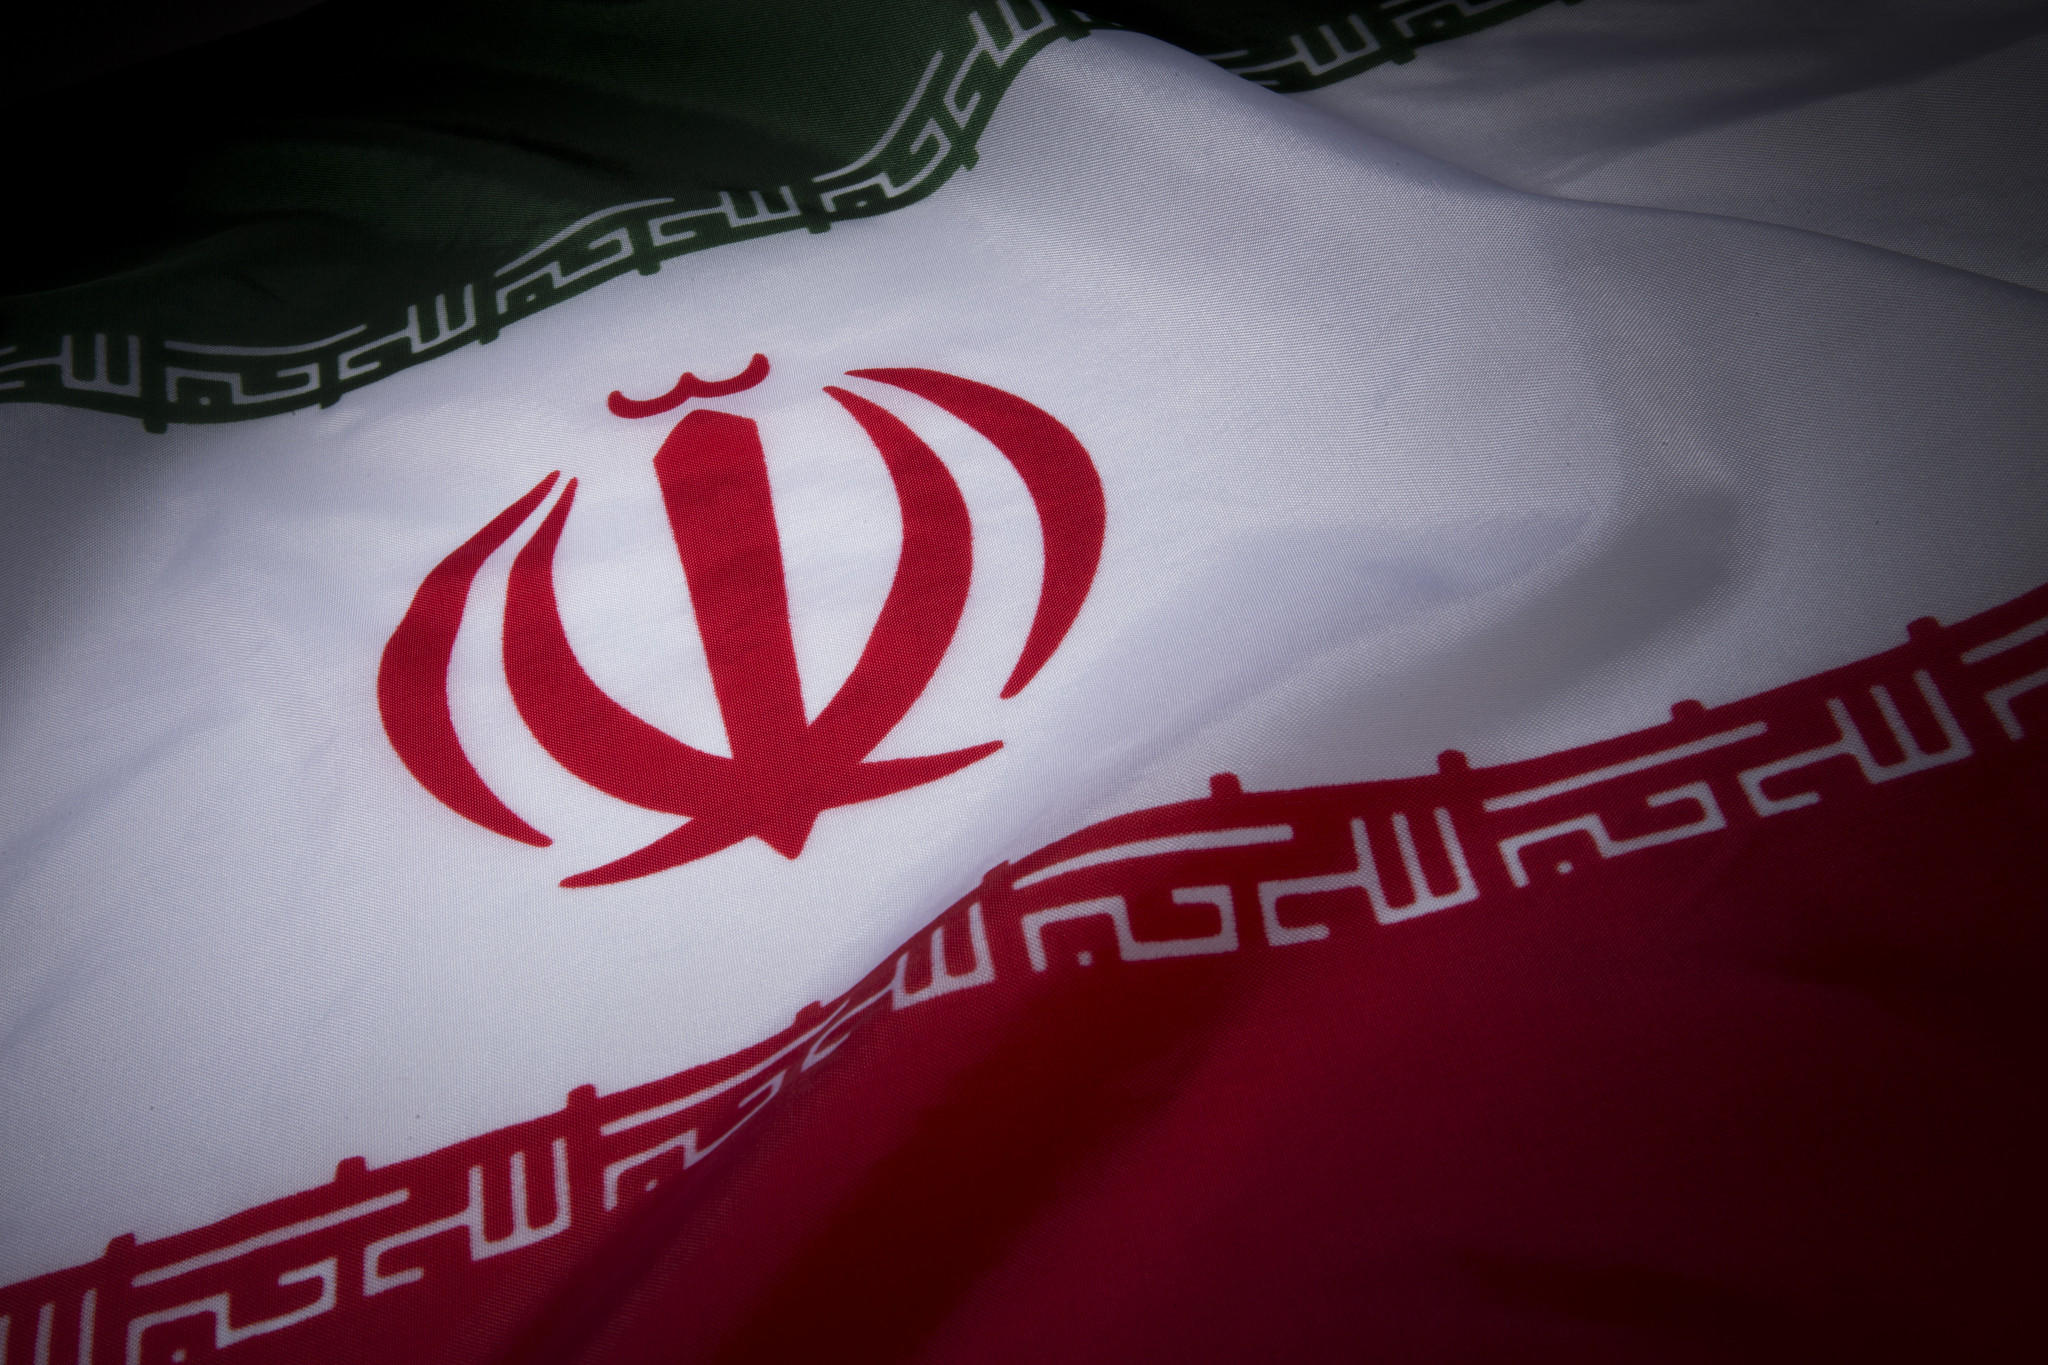 Iran has chosen diplomat Hamid Aboutalebi as its representative to the United Nations. He apparently was involved with a student group that seized the U.S. Embassy in Tehran in 1979.